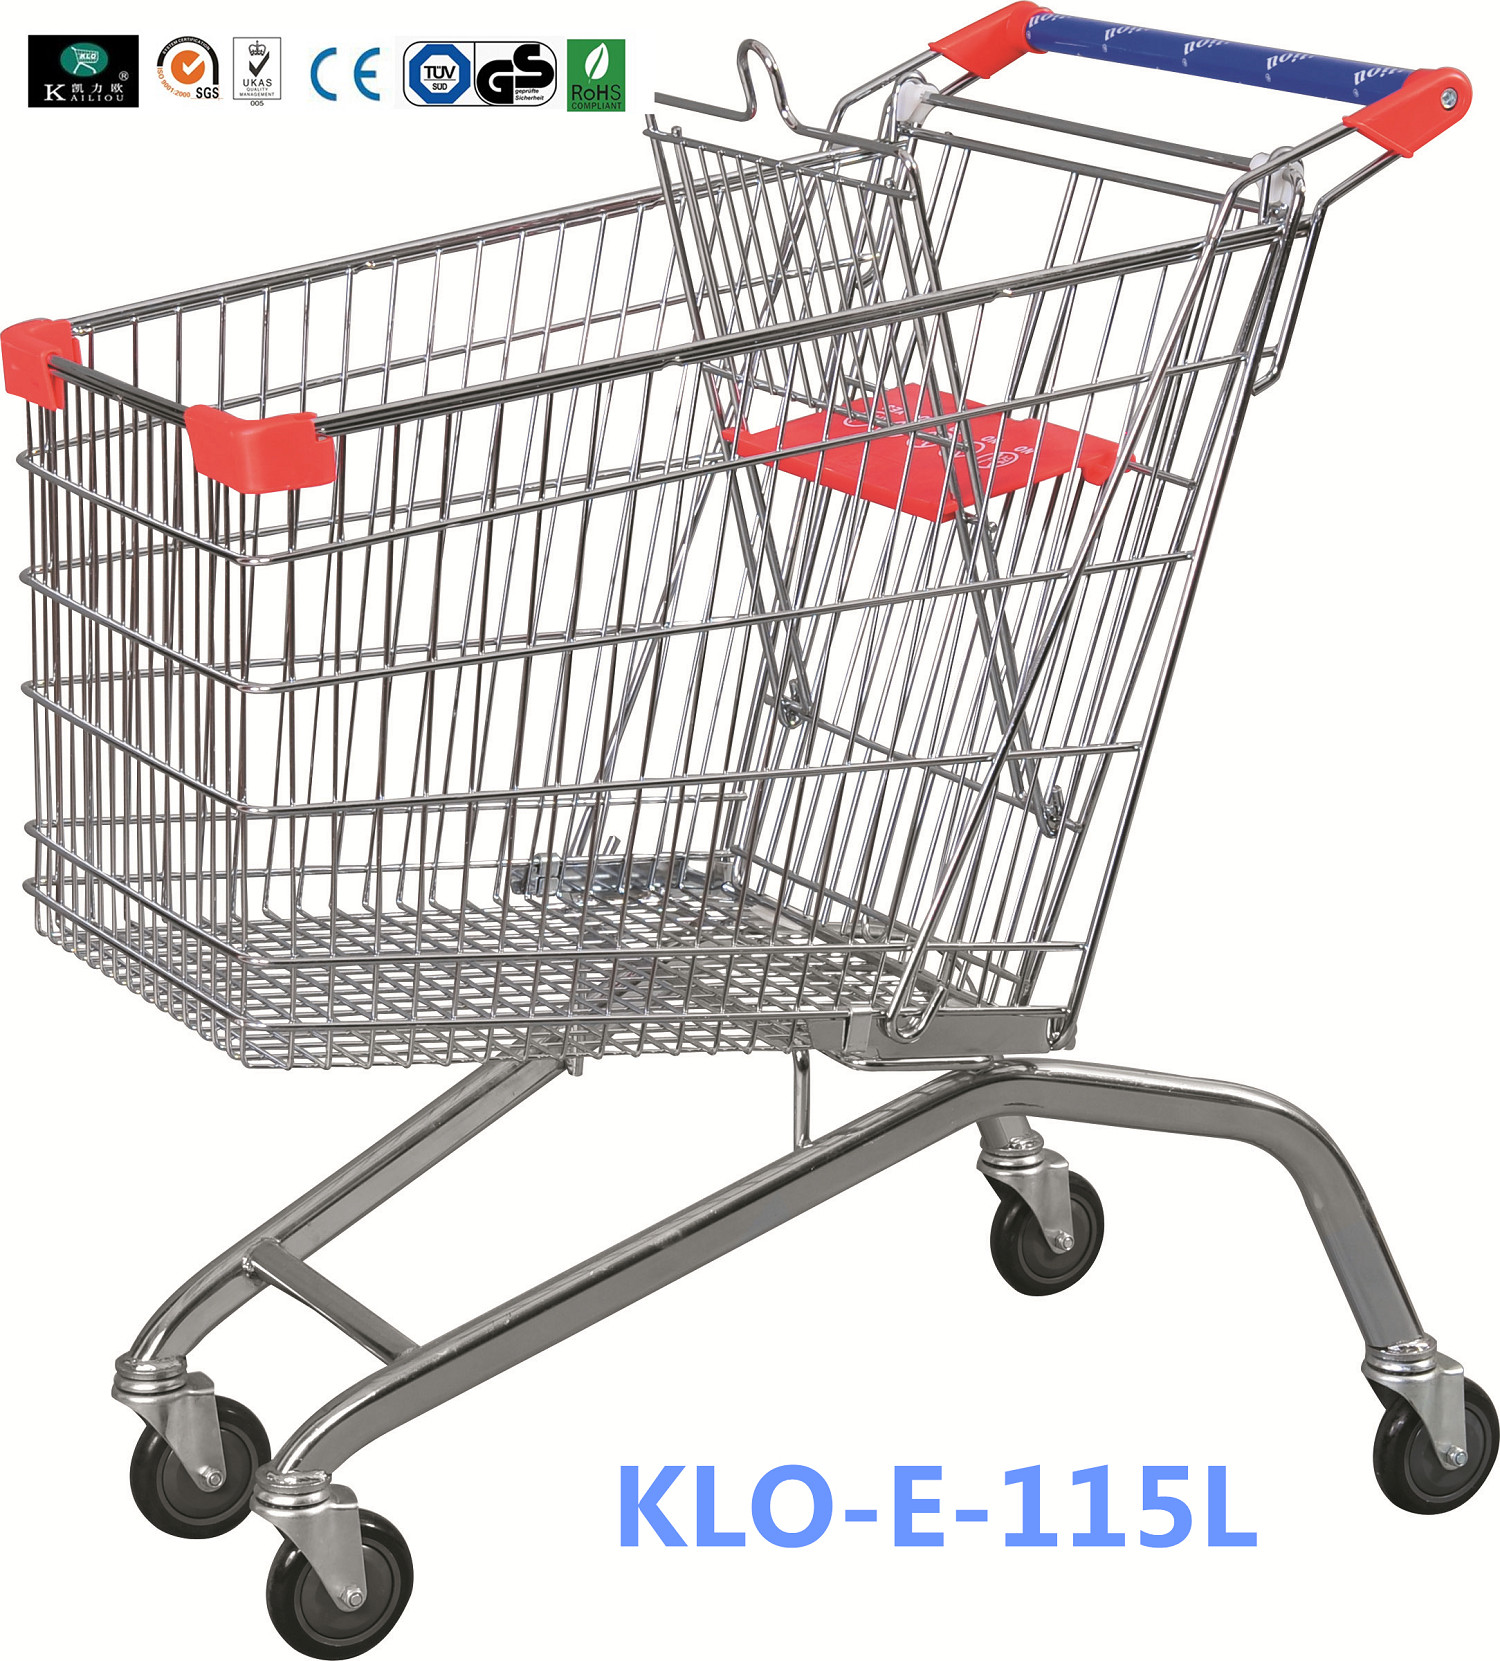 Large Heavy Duty Supermarket UK Shopping Cart 115L With 4x4 Inch Swivel PU Wheel